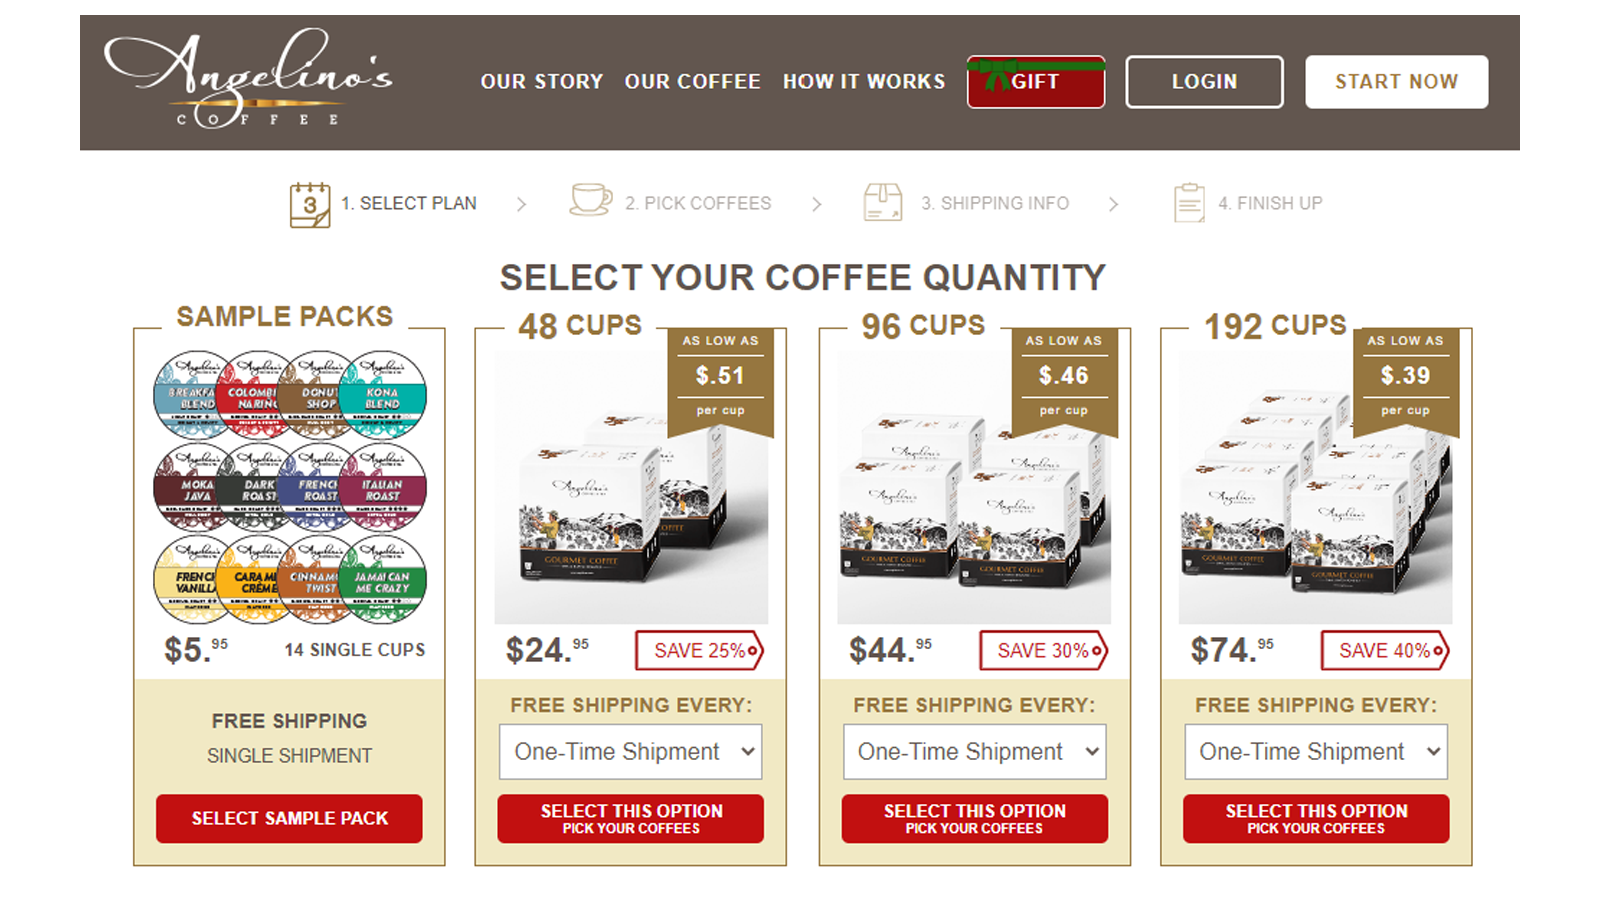 Angelino's best coffee subscription box for keurig k-cups for instant coffee